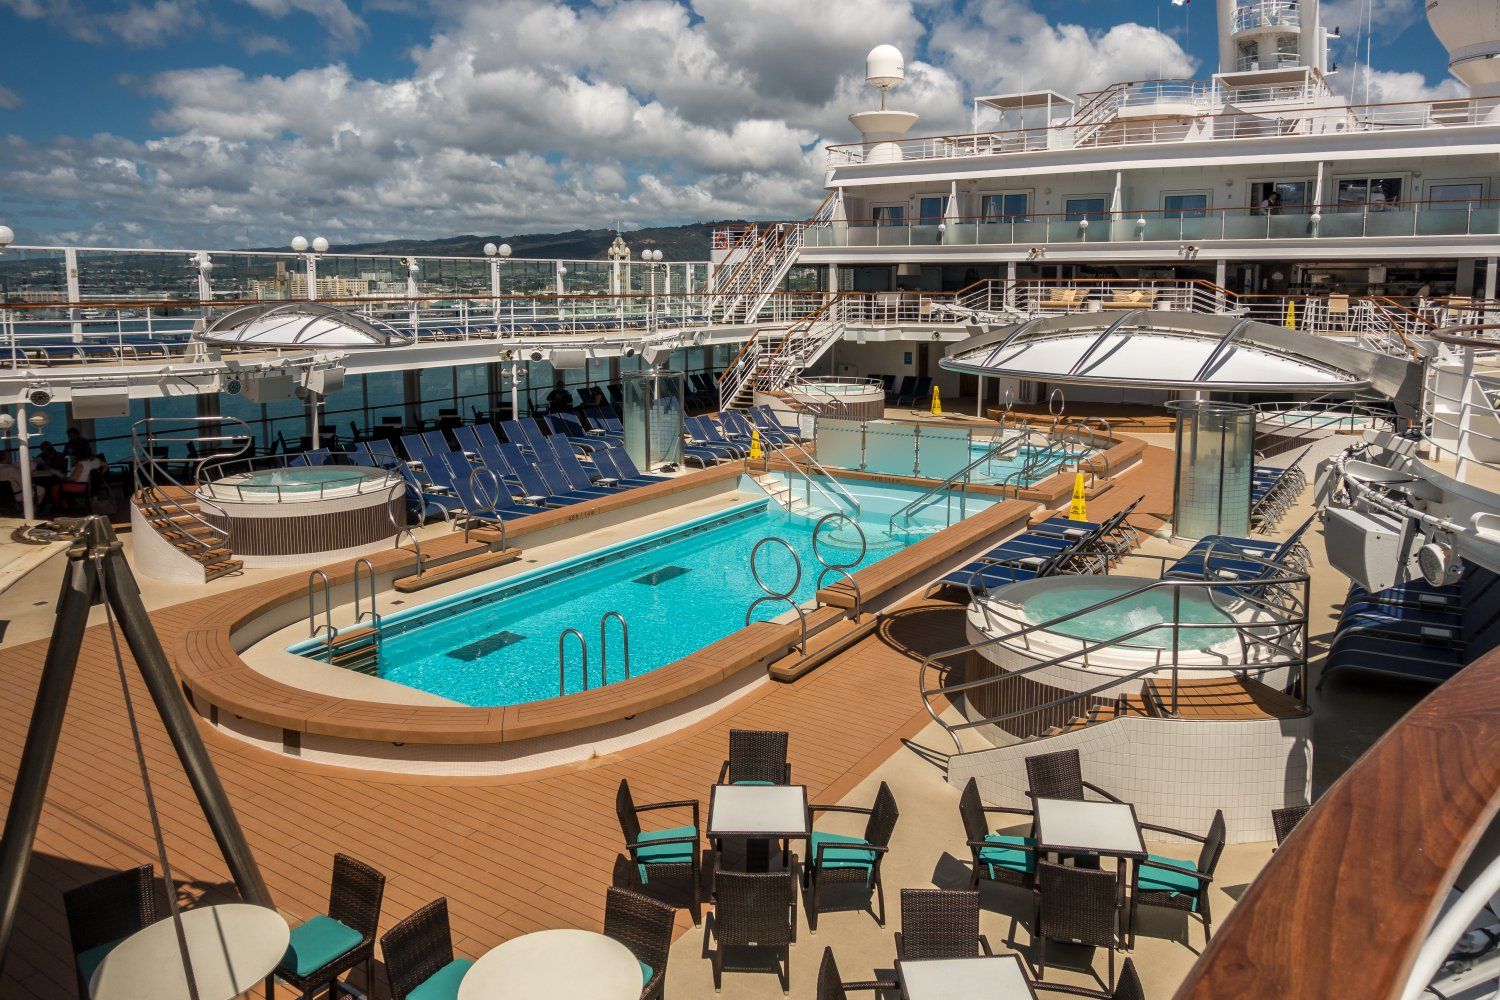 NCL Pride of America, Pooldeck